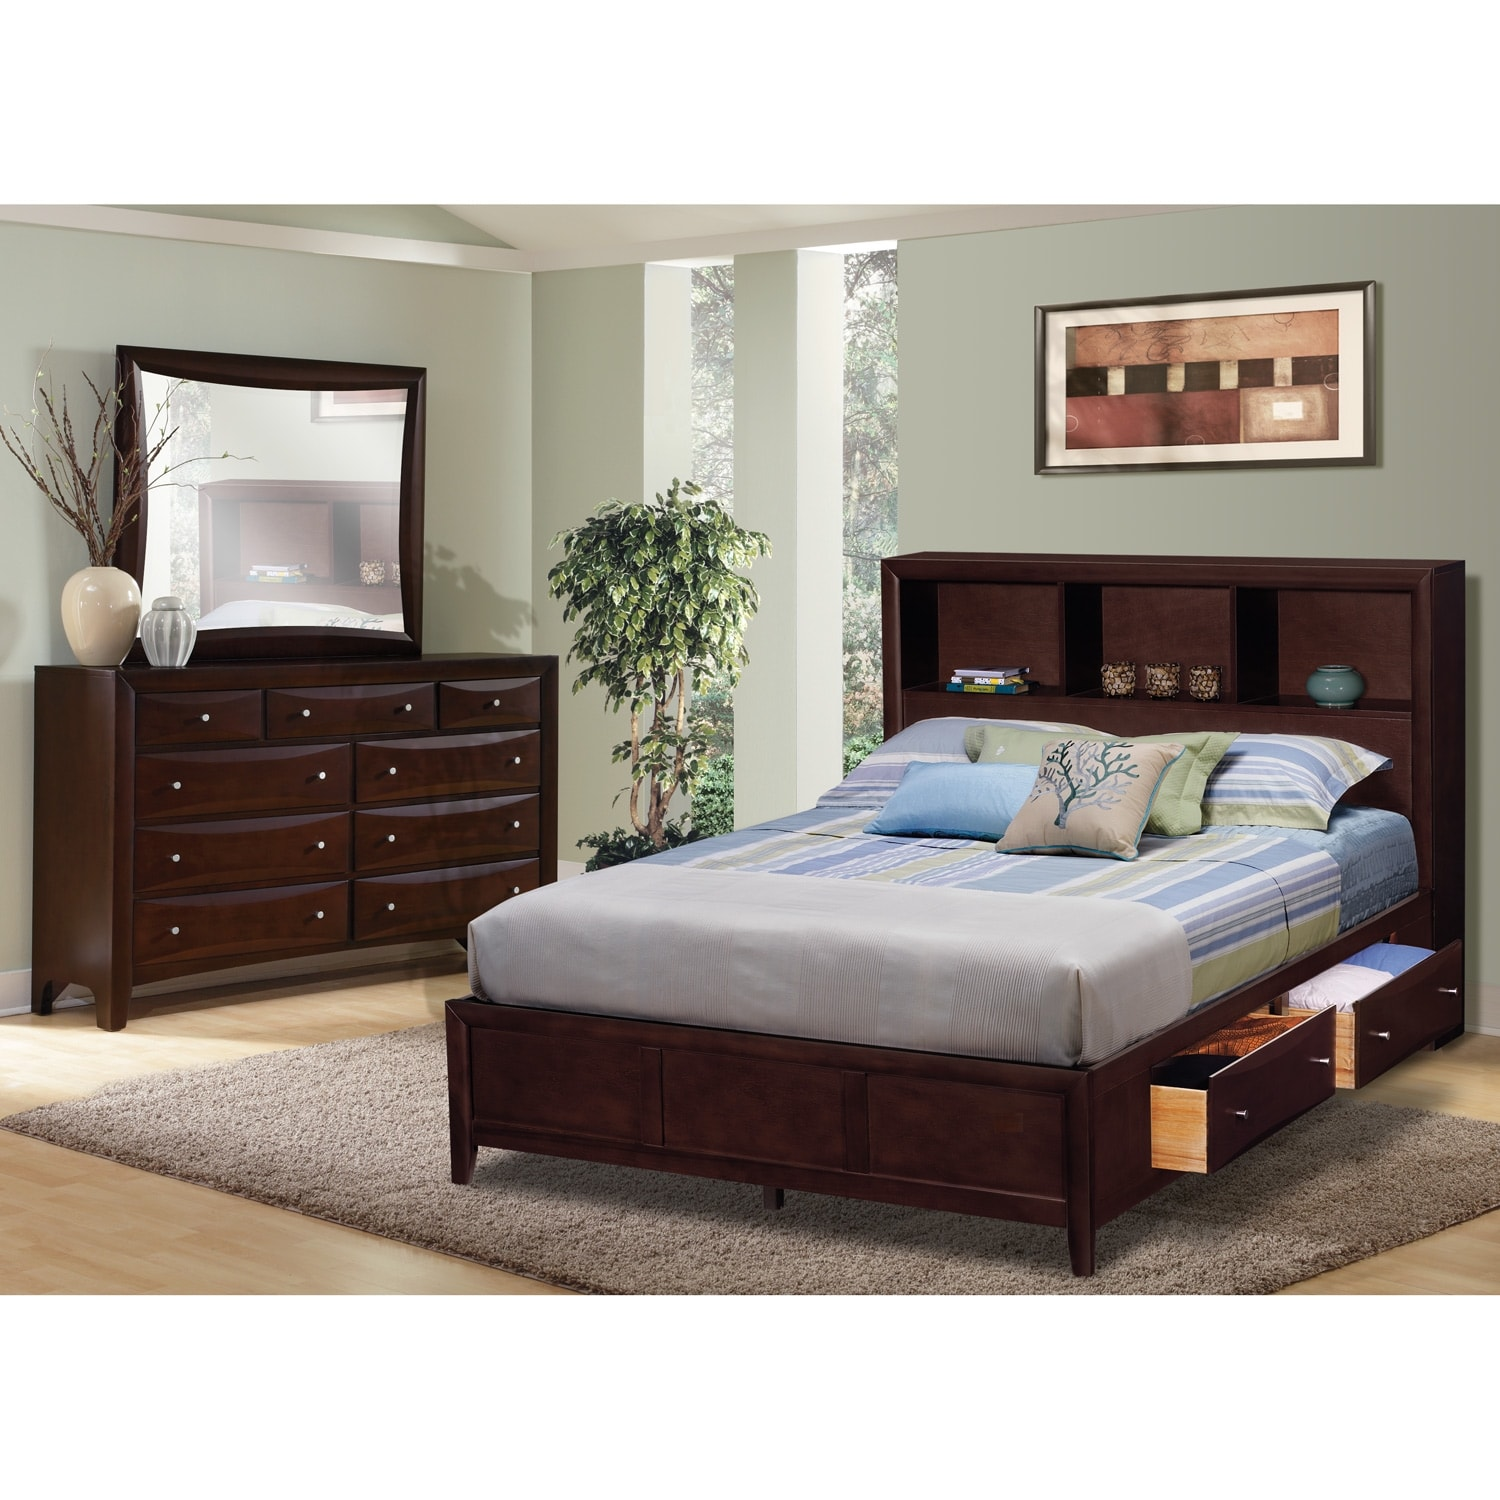 [Clarion 5 Pc. Queen Wall Bedroom]